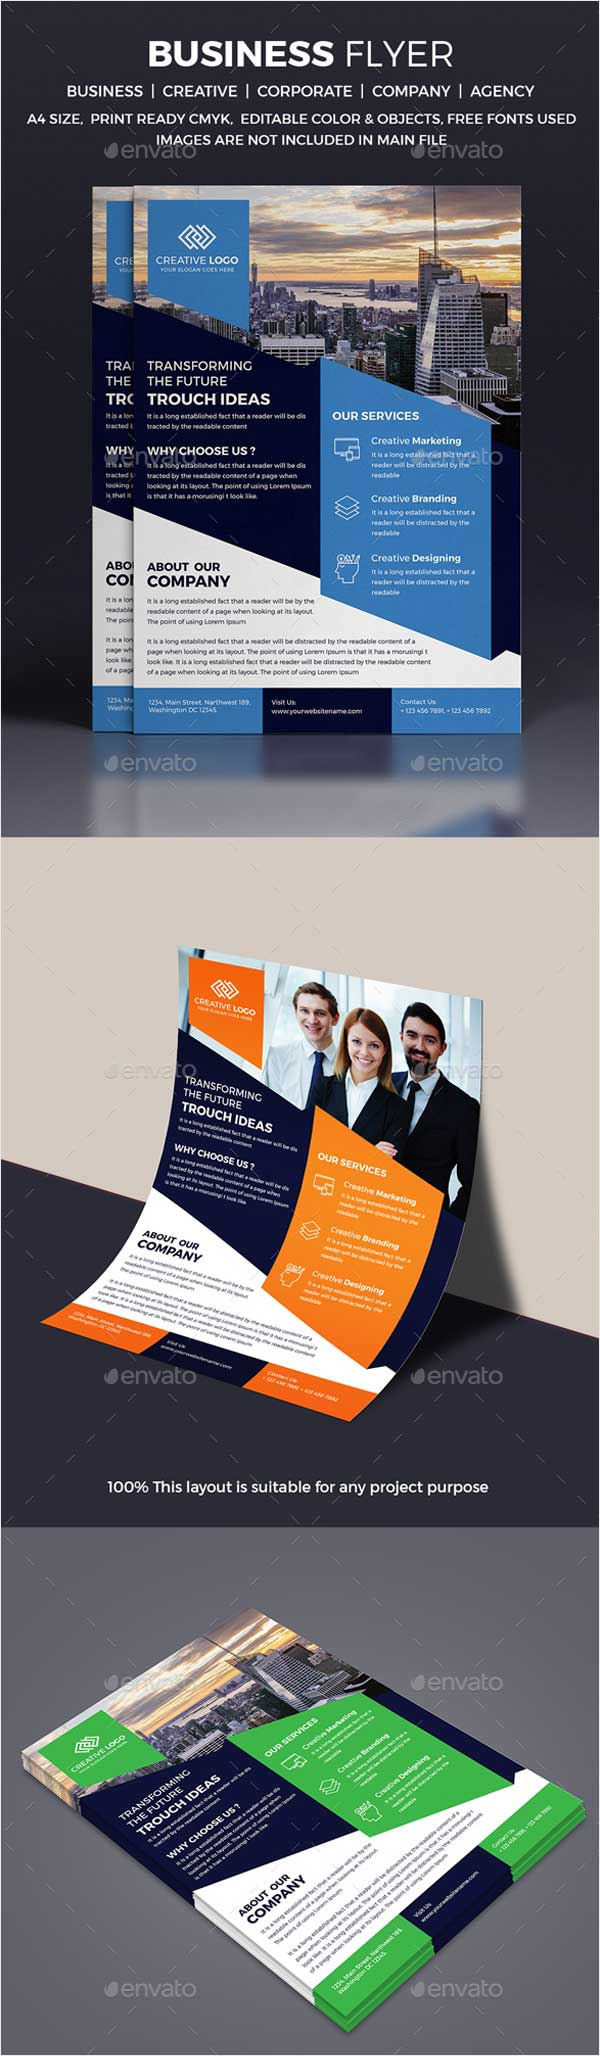 Business-Flyer-31